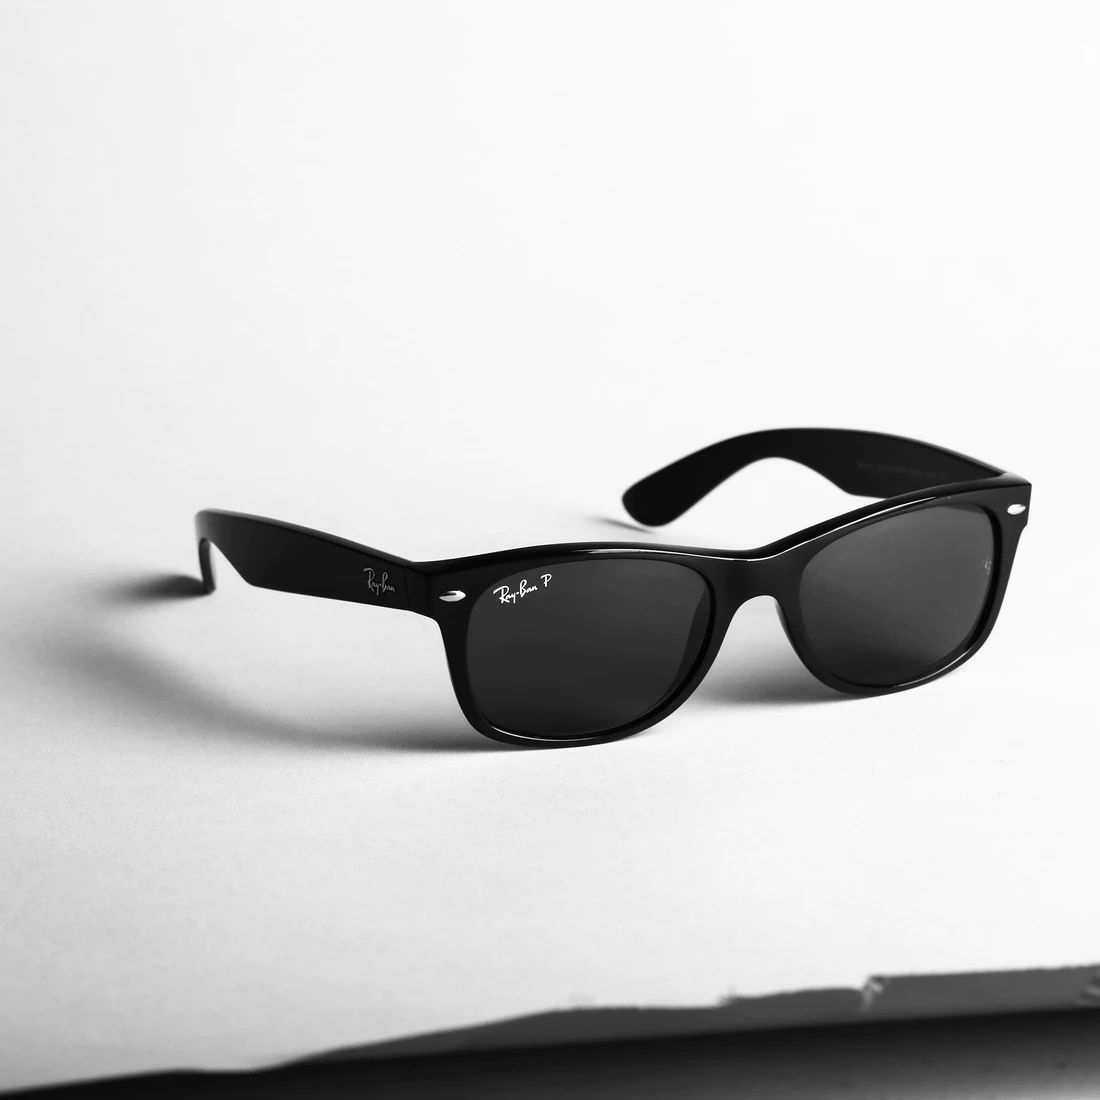 black pair of ray ban sunglasses on white background